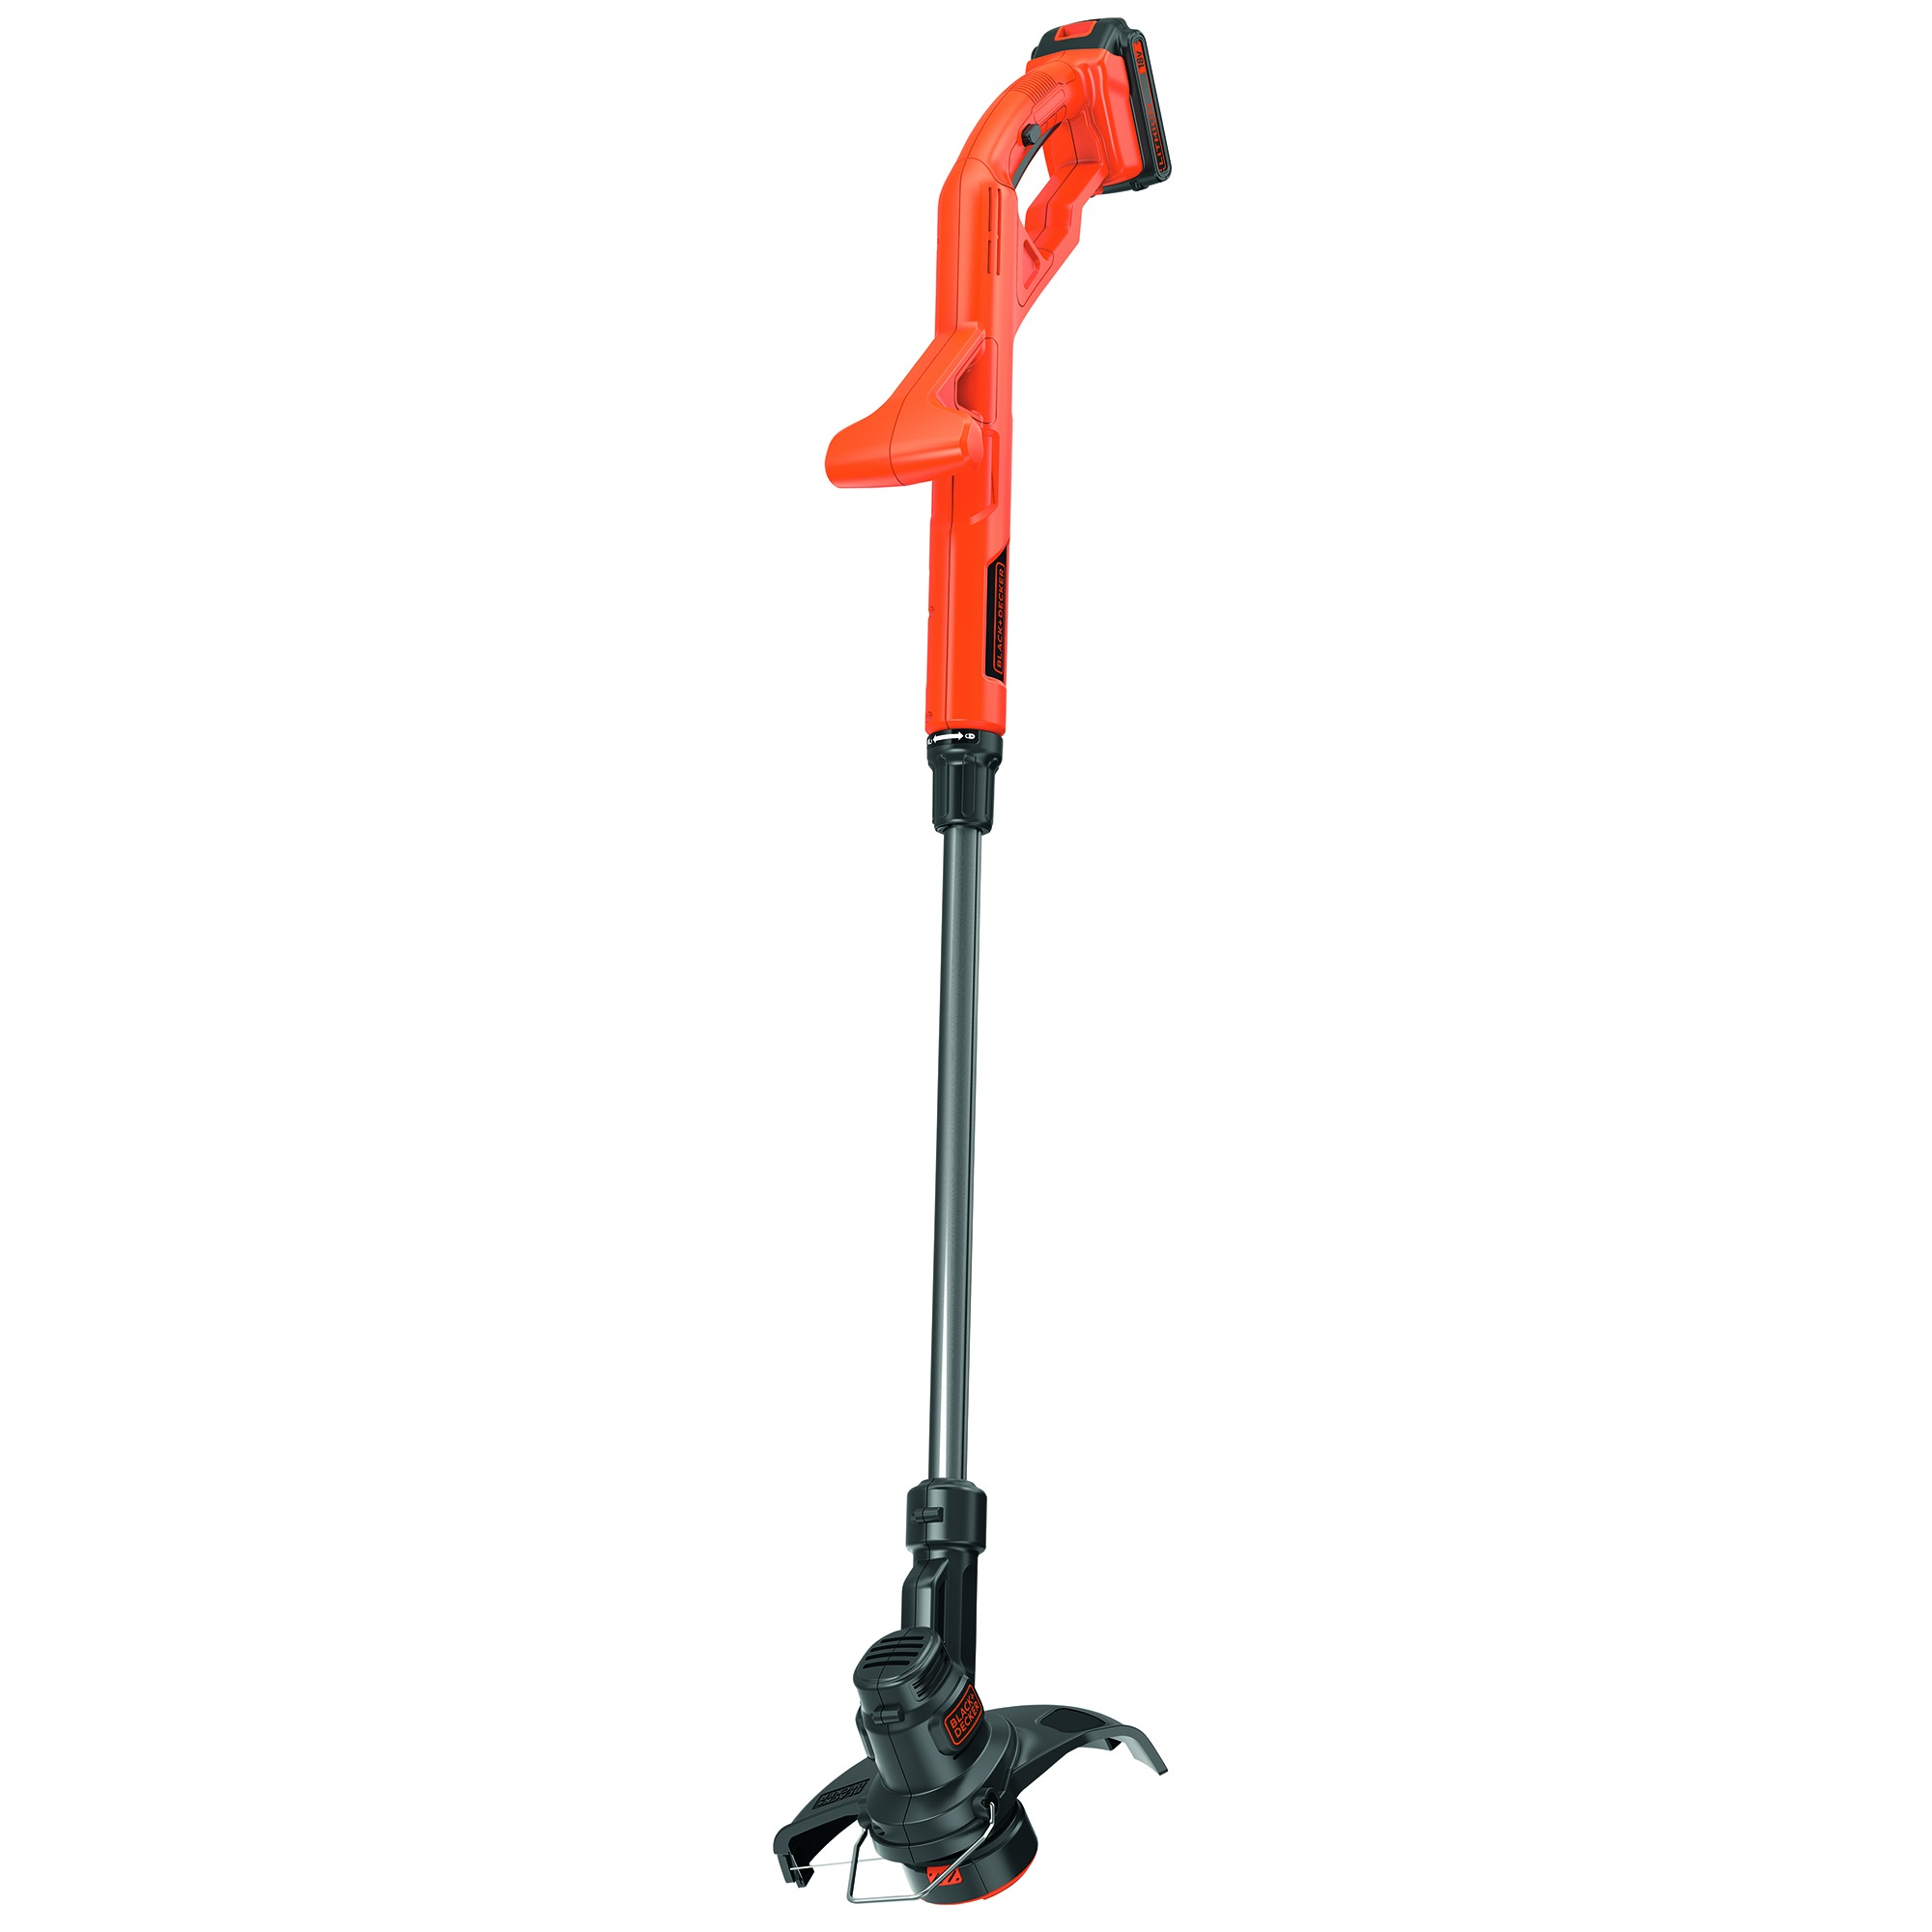 Black & Decker ST182320-QW